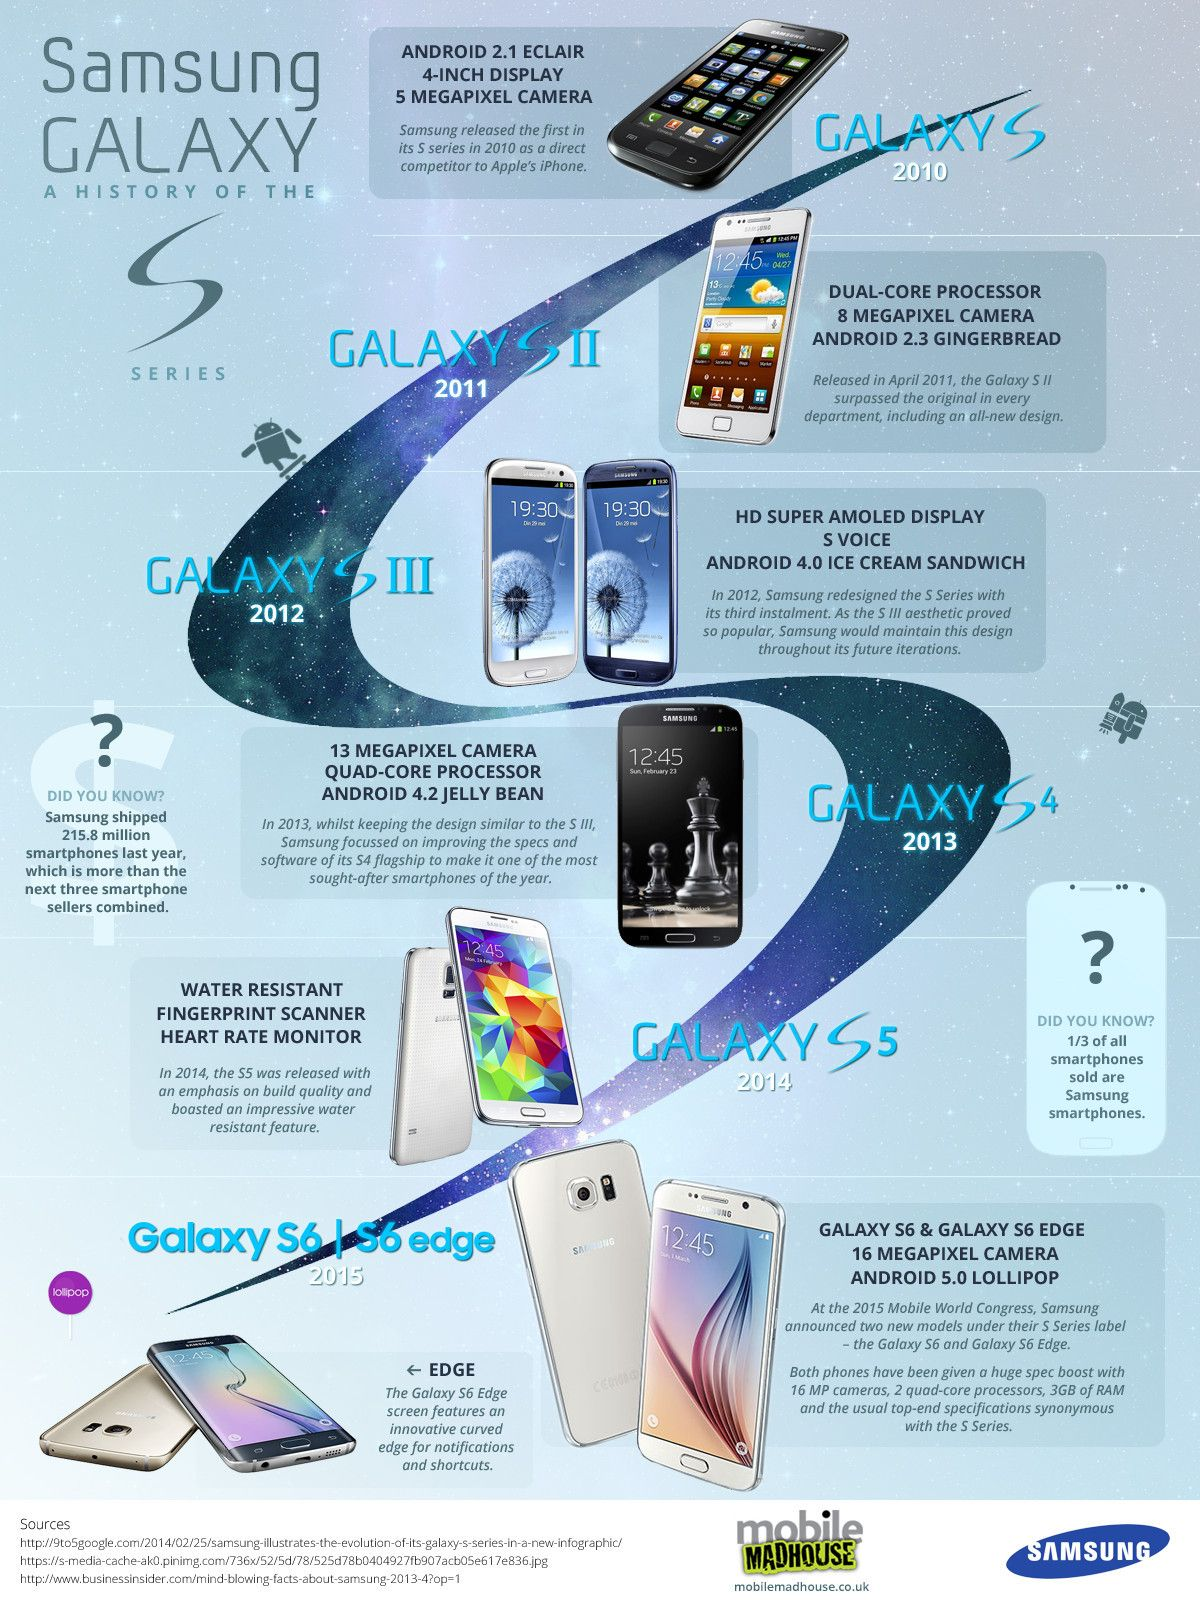 Image From From The Og To The Edge Evolution Of The Samsung Galaxy S Line Infographic Samsung Galaxy S Series Samsung Galaxy S Samsung Galaxy